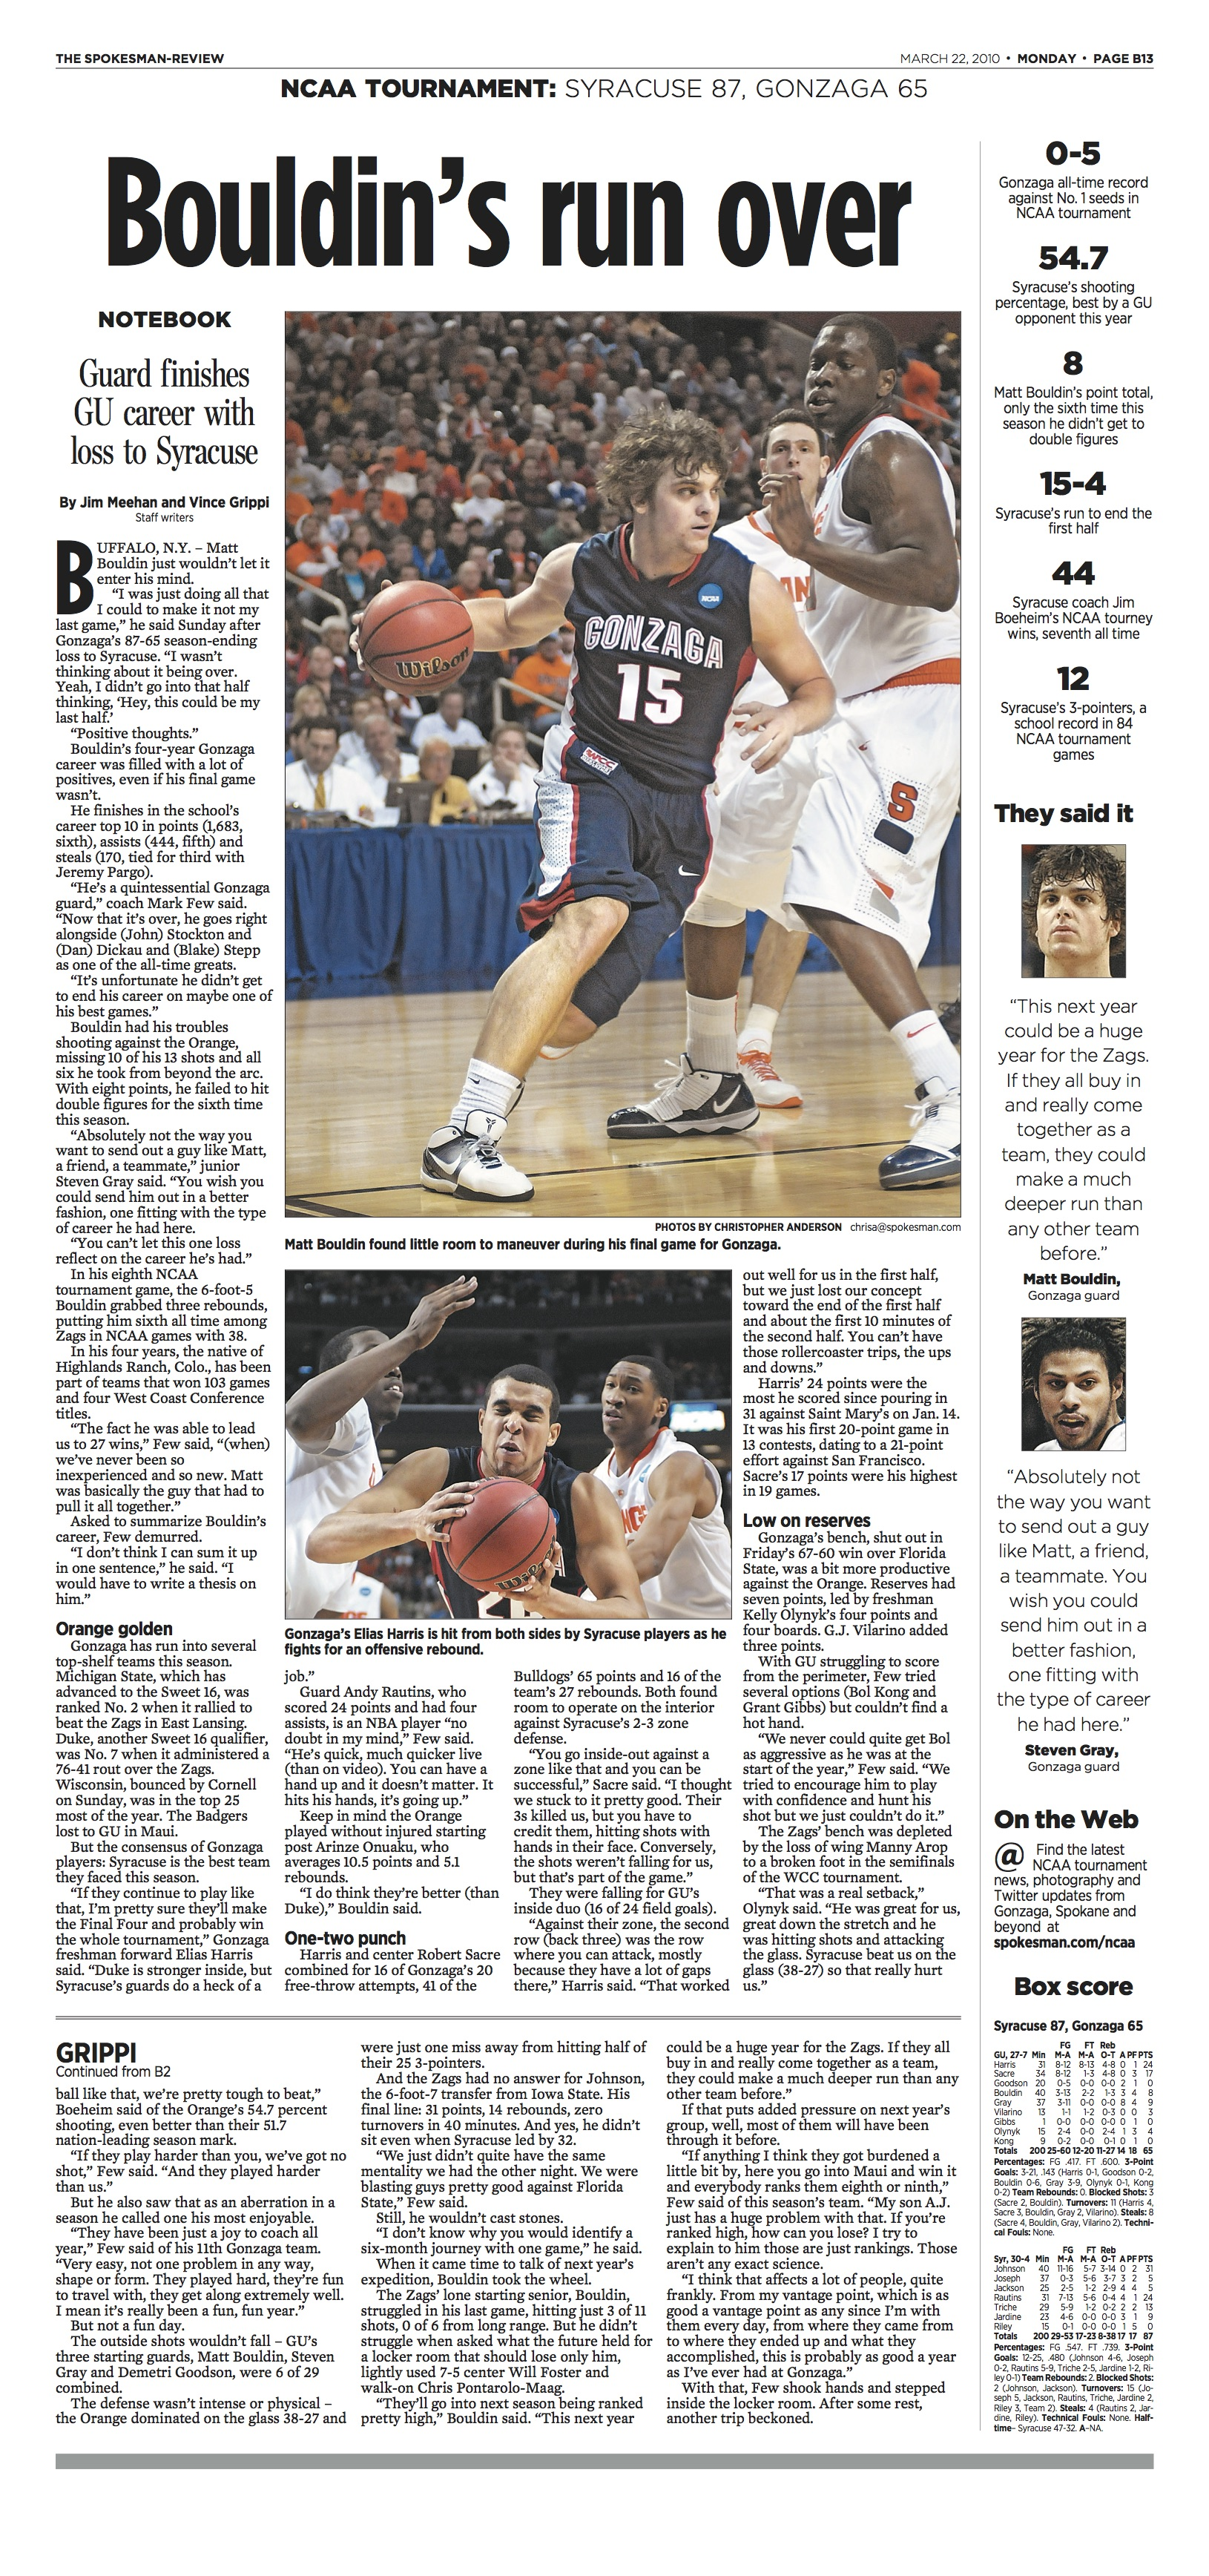 Historic page: Mar. 22, 2010